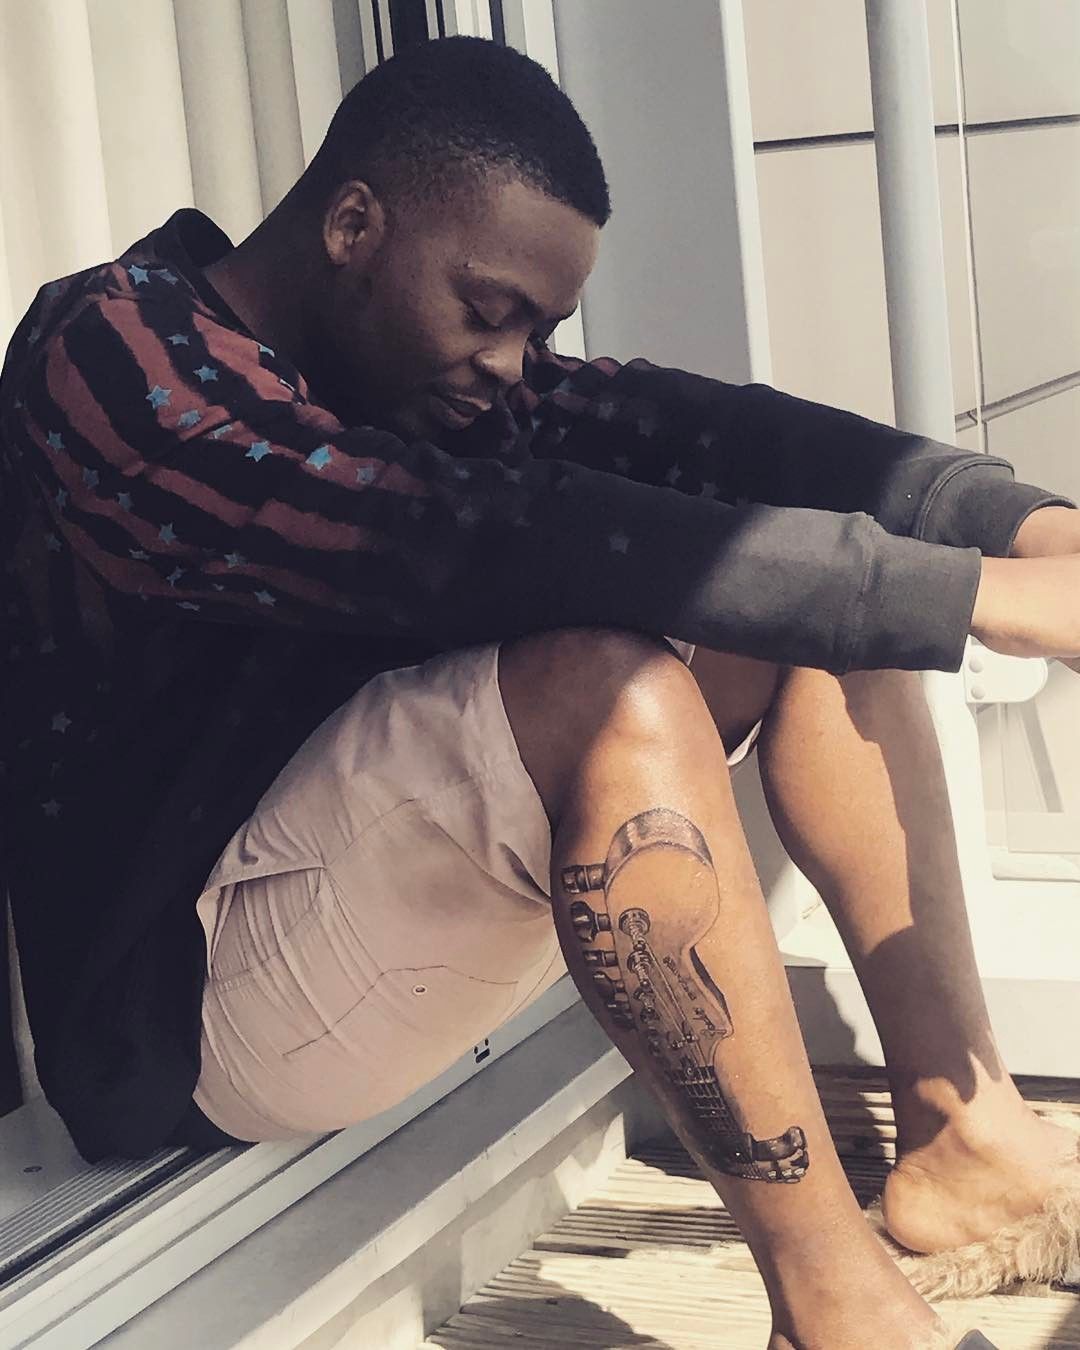 #Baddosneh: Olamide Gets Second Tattoo 7months After getting 1st Tattoo, See Photos